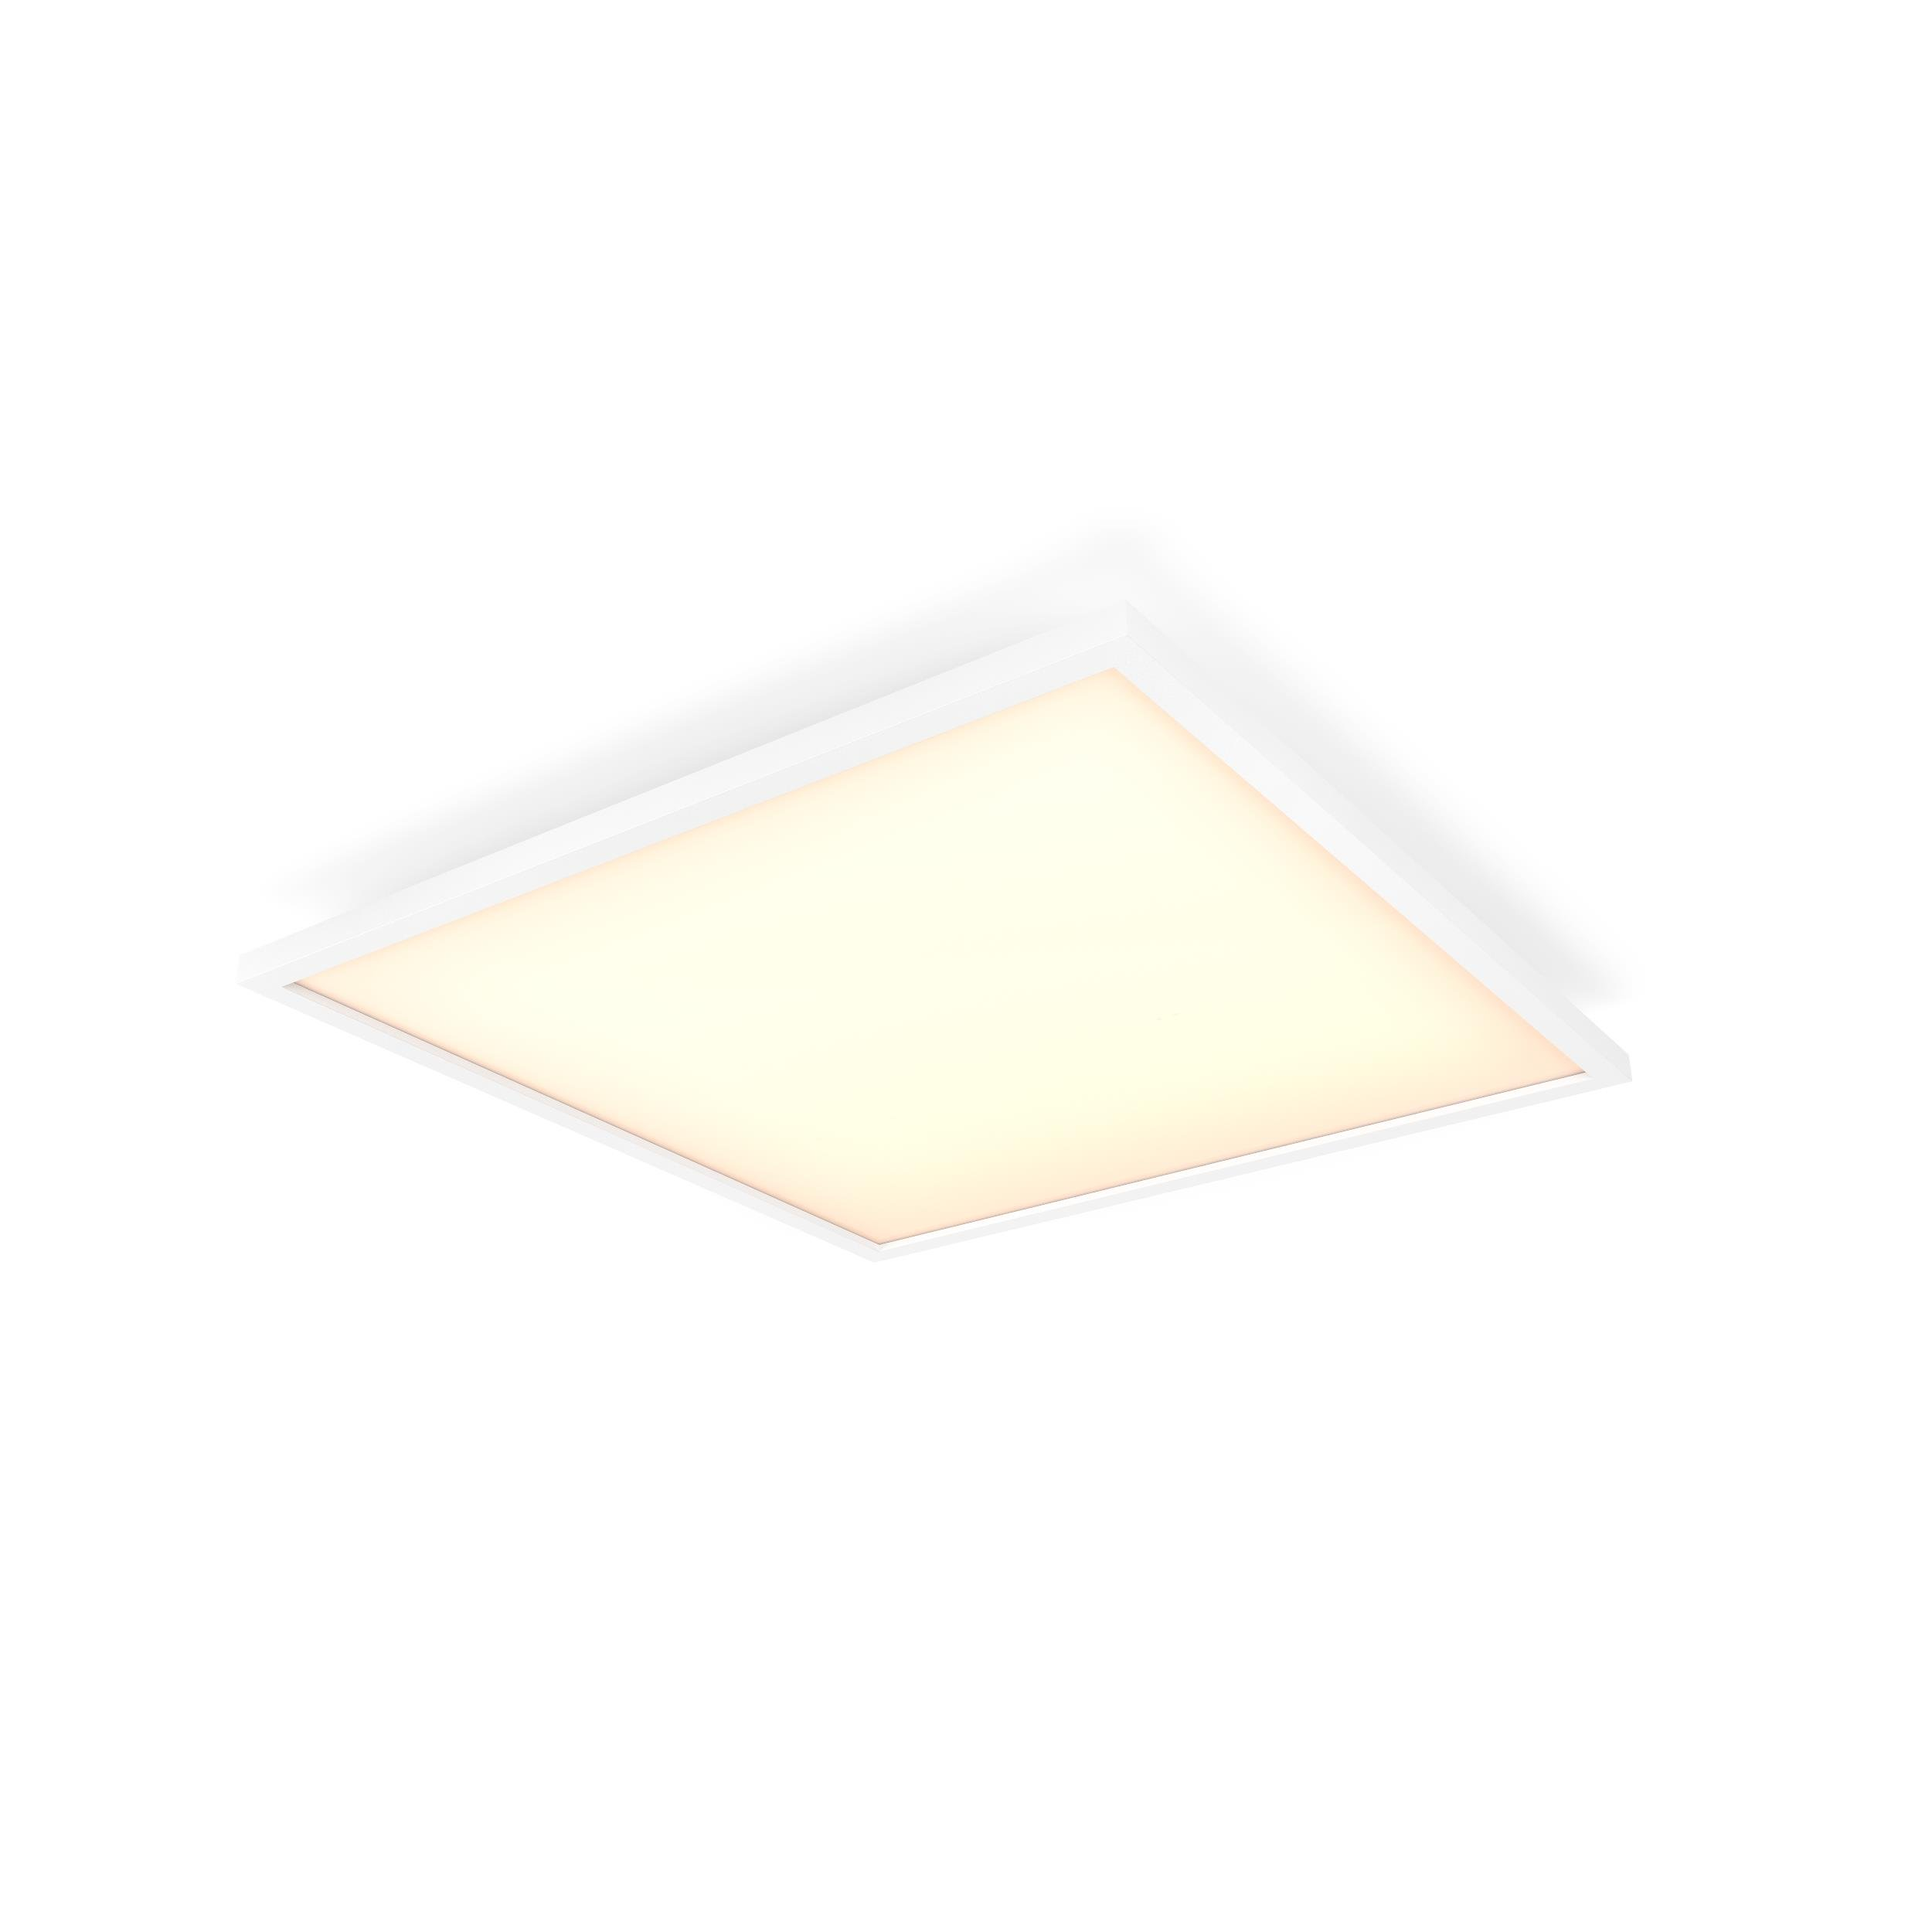 Philips Hue - Aurelle Hue Panel SQ 46.5W ceiling lamp - White Ambiance Bluetooth Dimmer Included